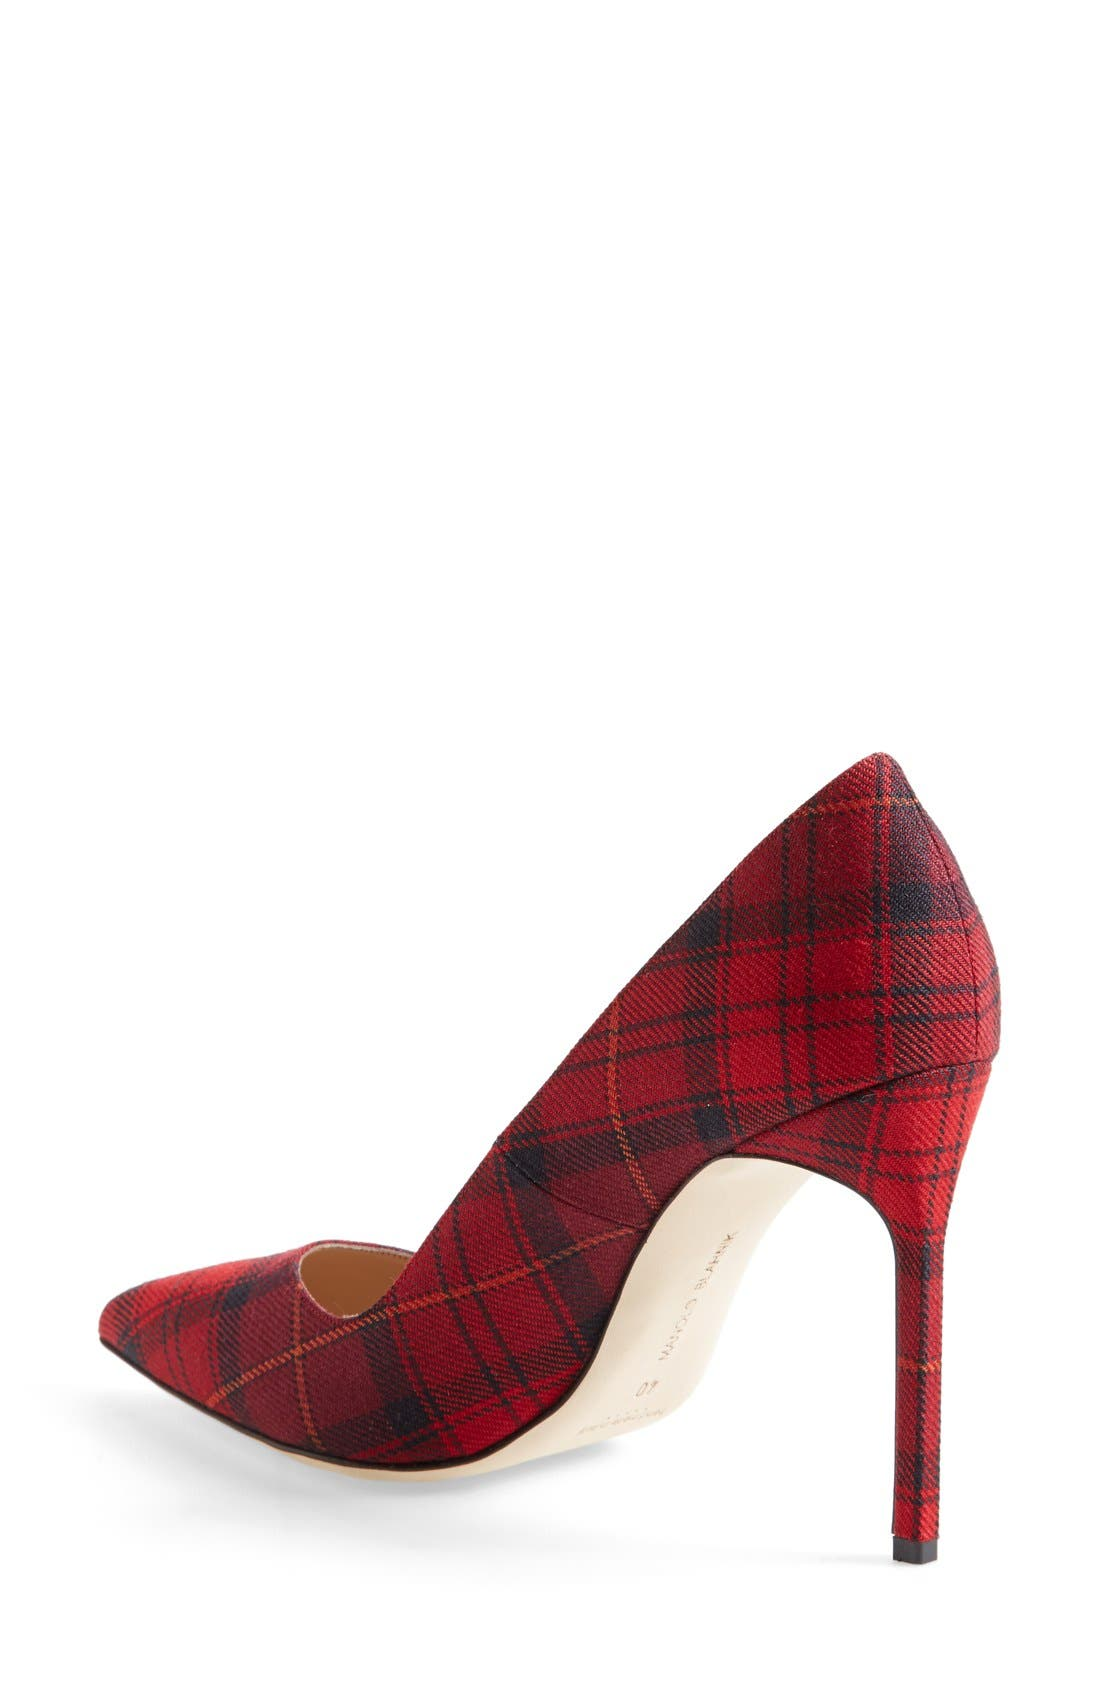 BB Pointy Toe Pump,                             Alternate thumbnail 2, color,                             Red Plaid Fabric